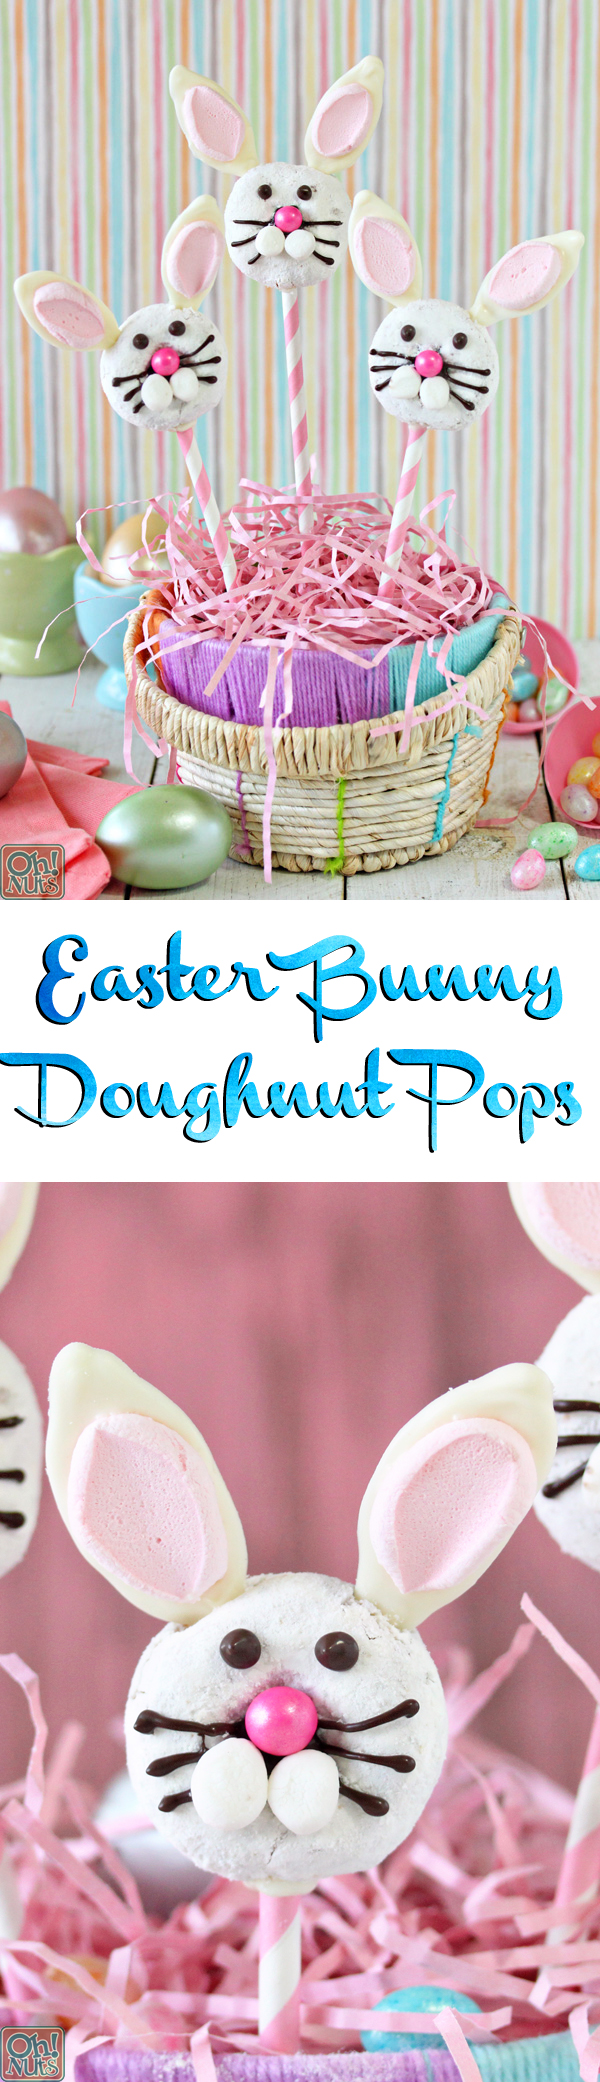 Easter Bunny Doughnut Pops | From OhNuts.com